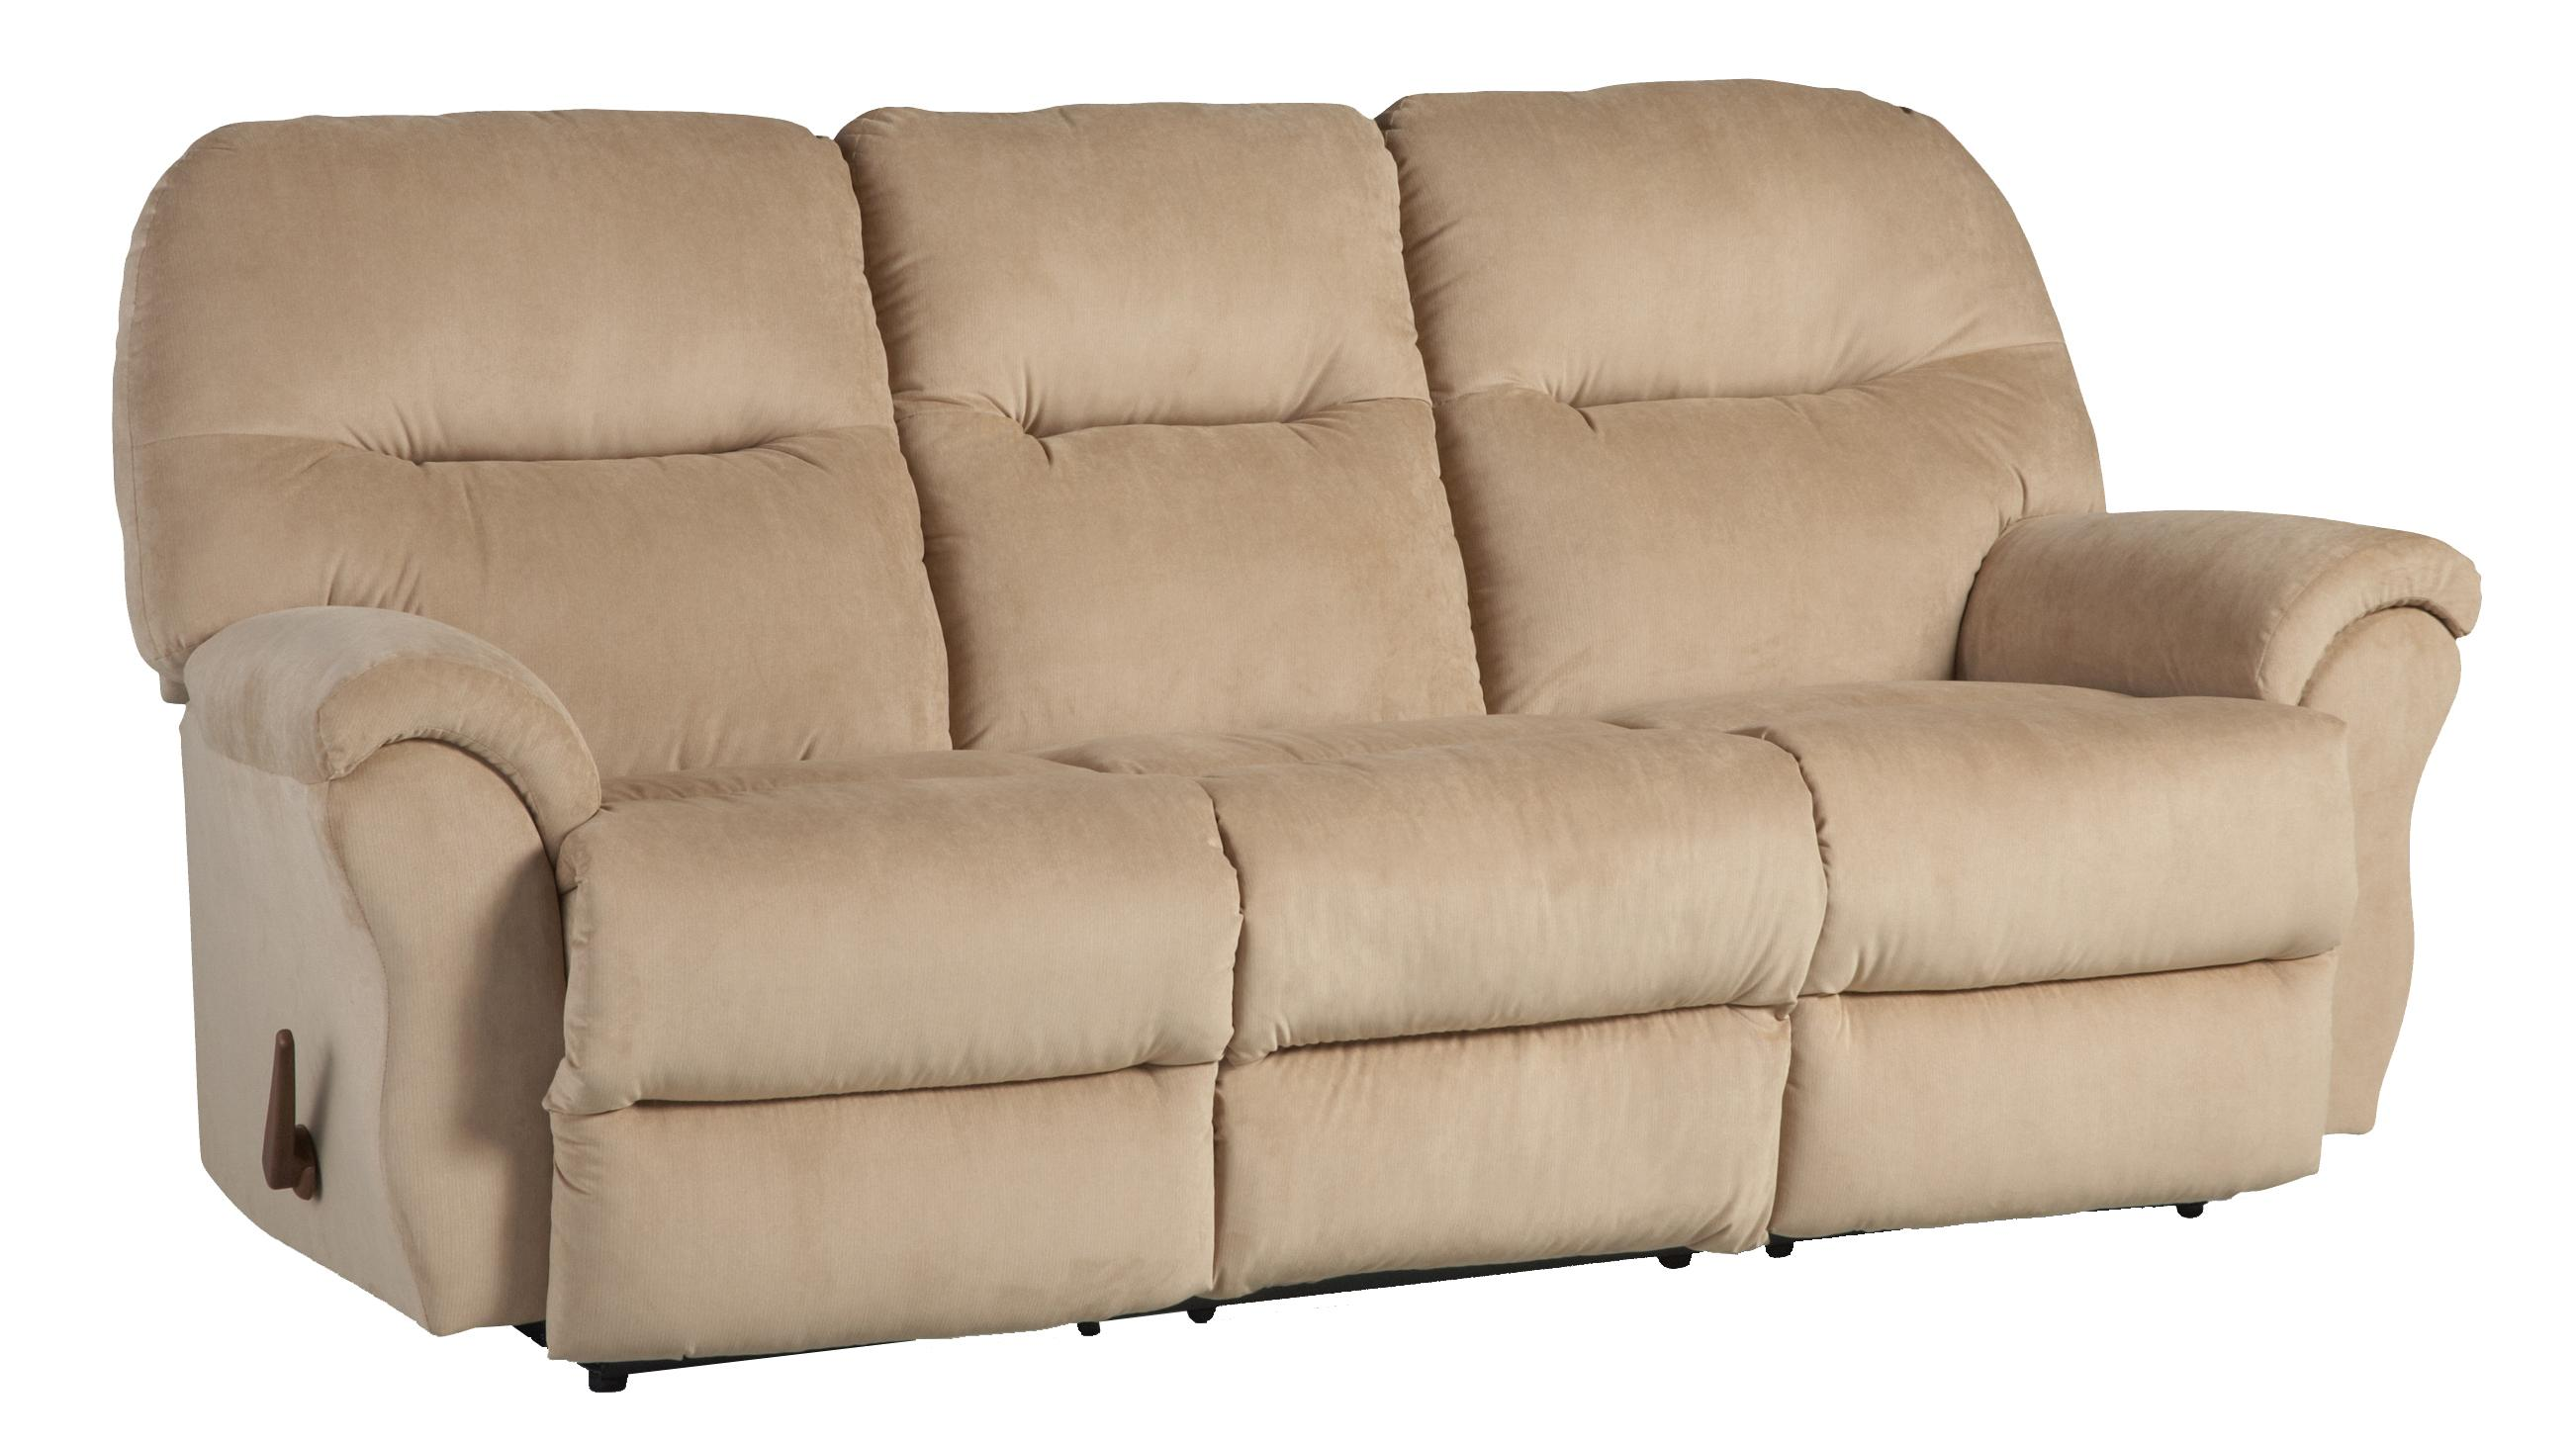 Bodie Power Reclining Sofa by Best Home Furnishings at Best Home Furnishings